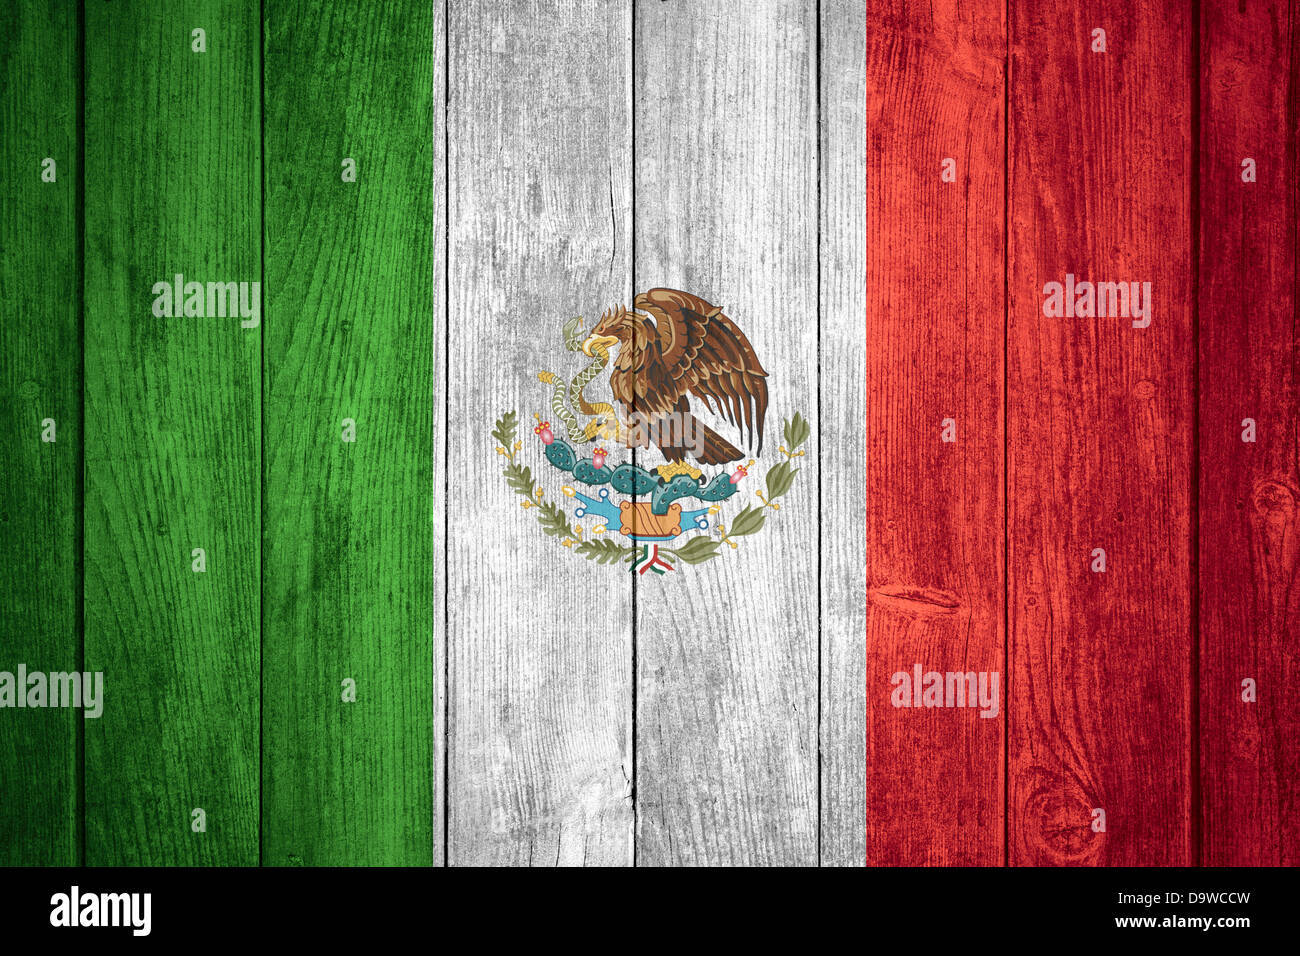 flag of Mexico or green, white and red Mexican banner on wooden background - Stock Image